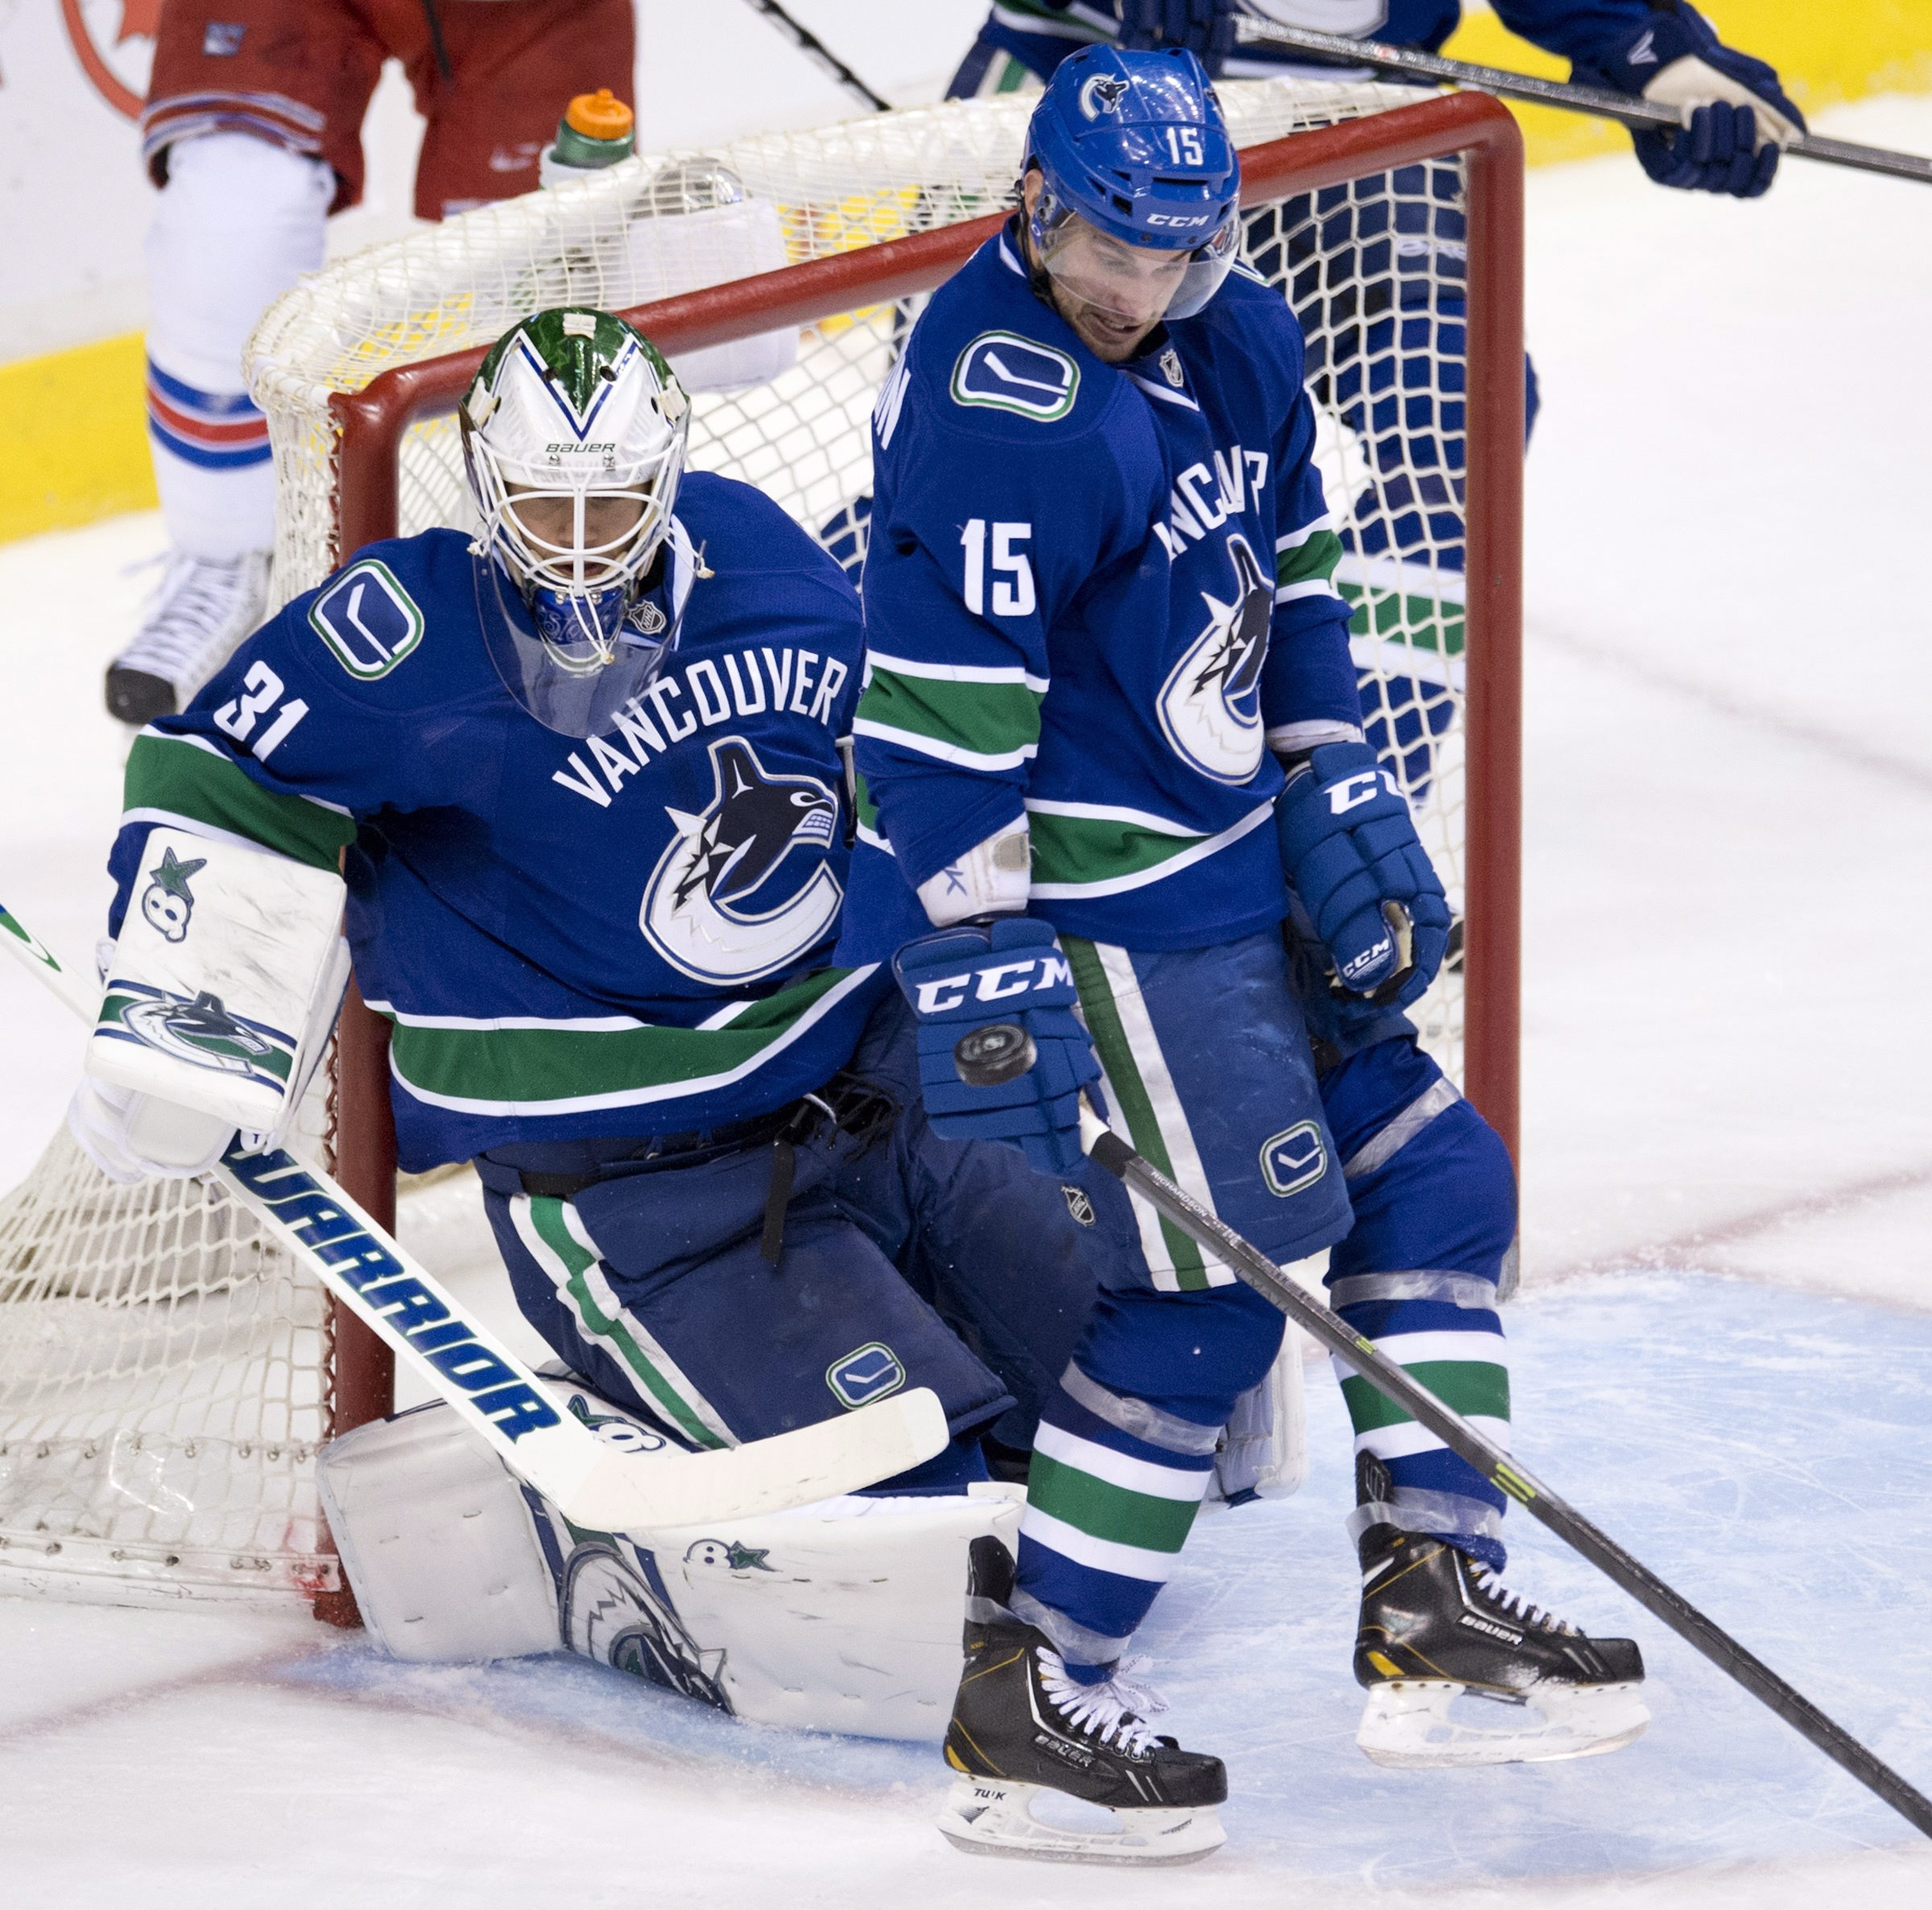 Vancouver Canucks goalie Eddie Lack (31) and Brad Richardson (15) stop a shot from the New York Rangers during the second period of NHL action in Vancouver, British Columbia, Tuesday, April 1, 2014